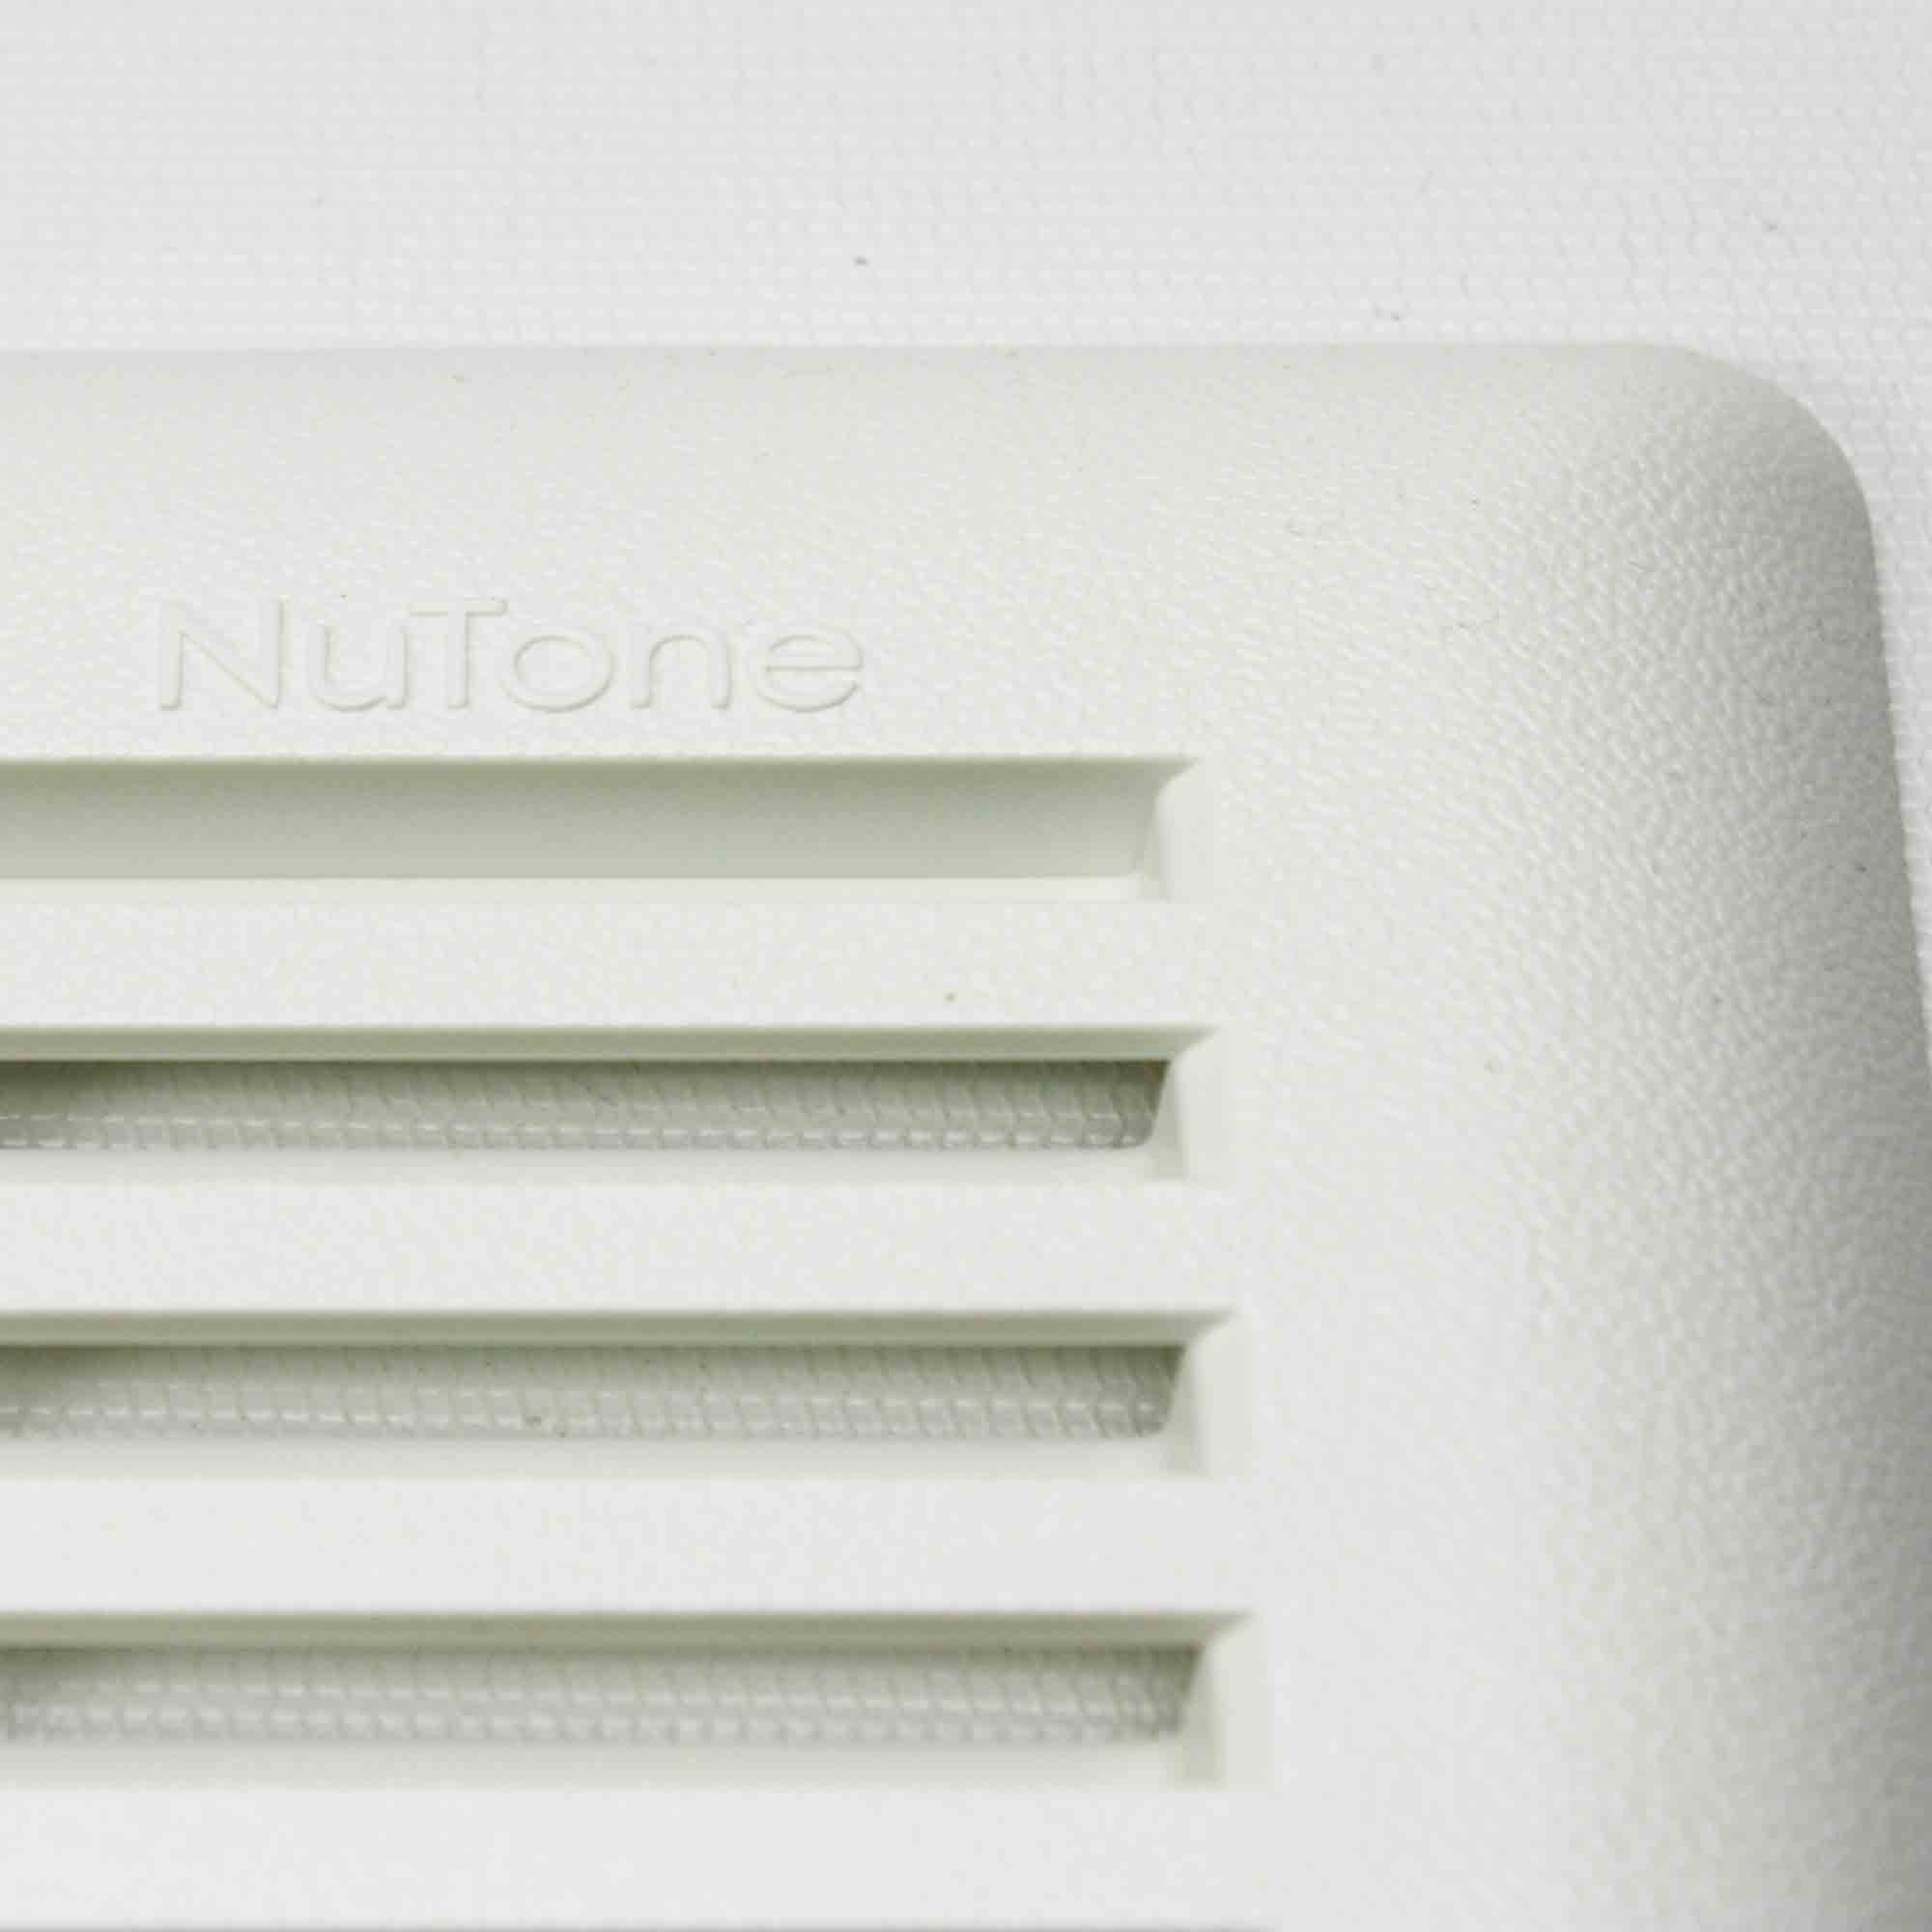 Bathroom Vent Grill: S97017068 For Broan Bathroom Exhaust Fan Vent Grille